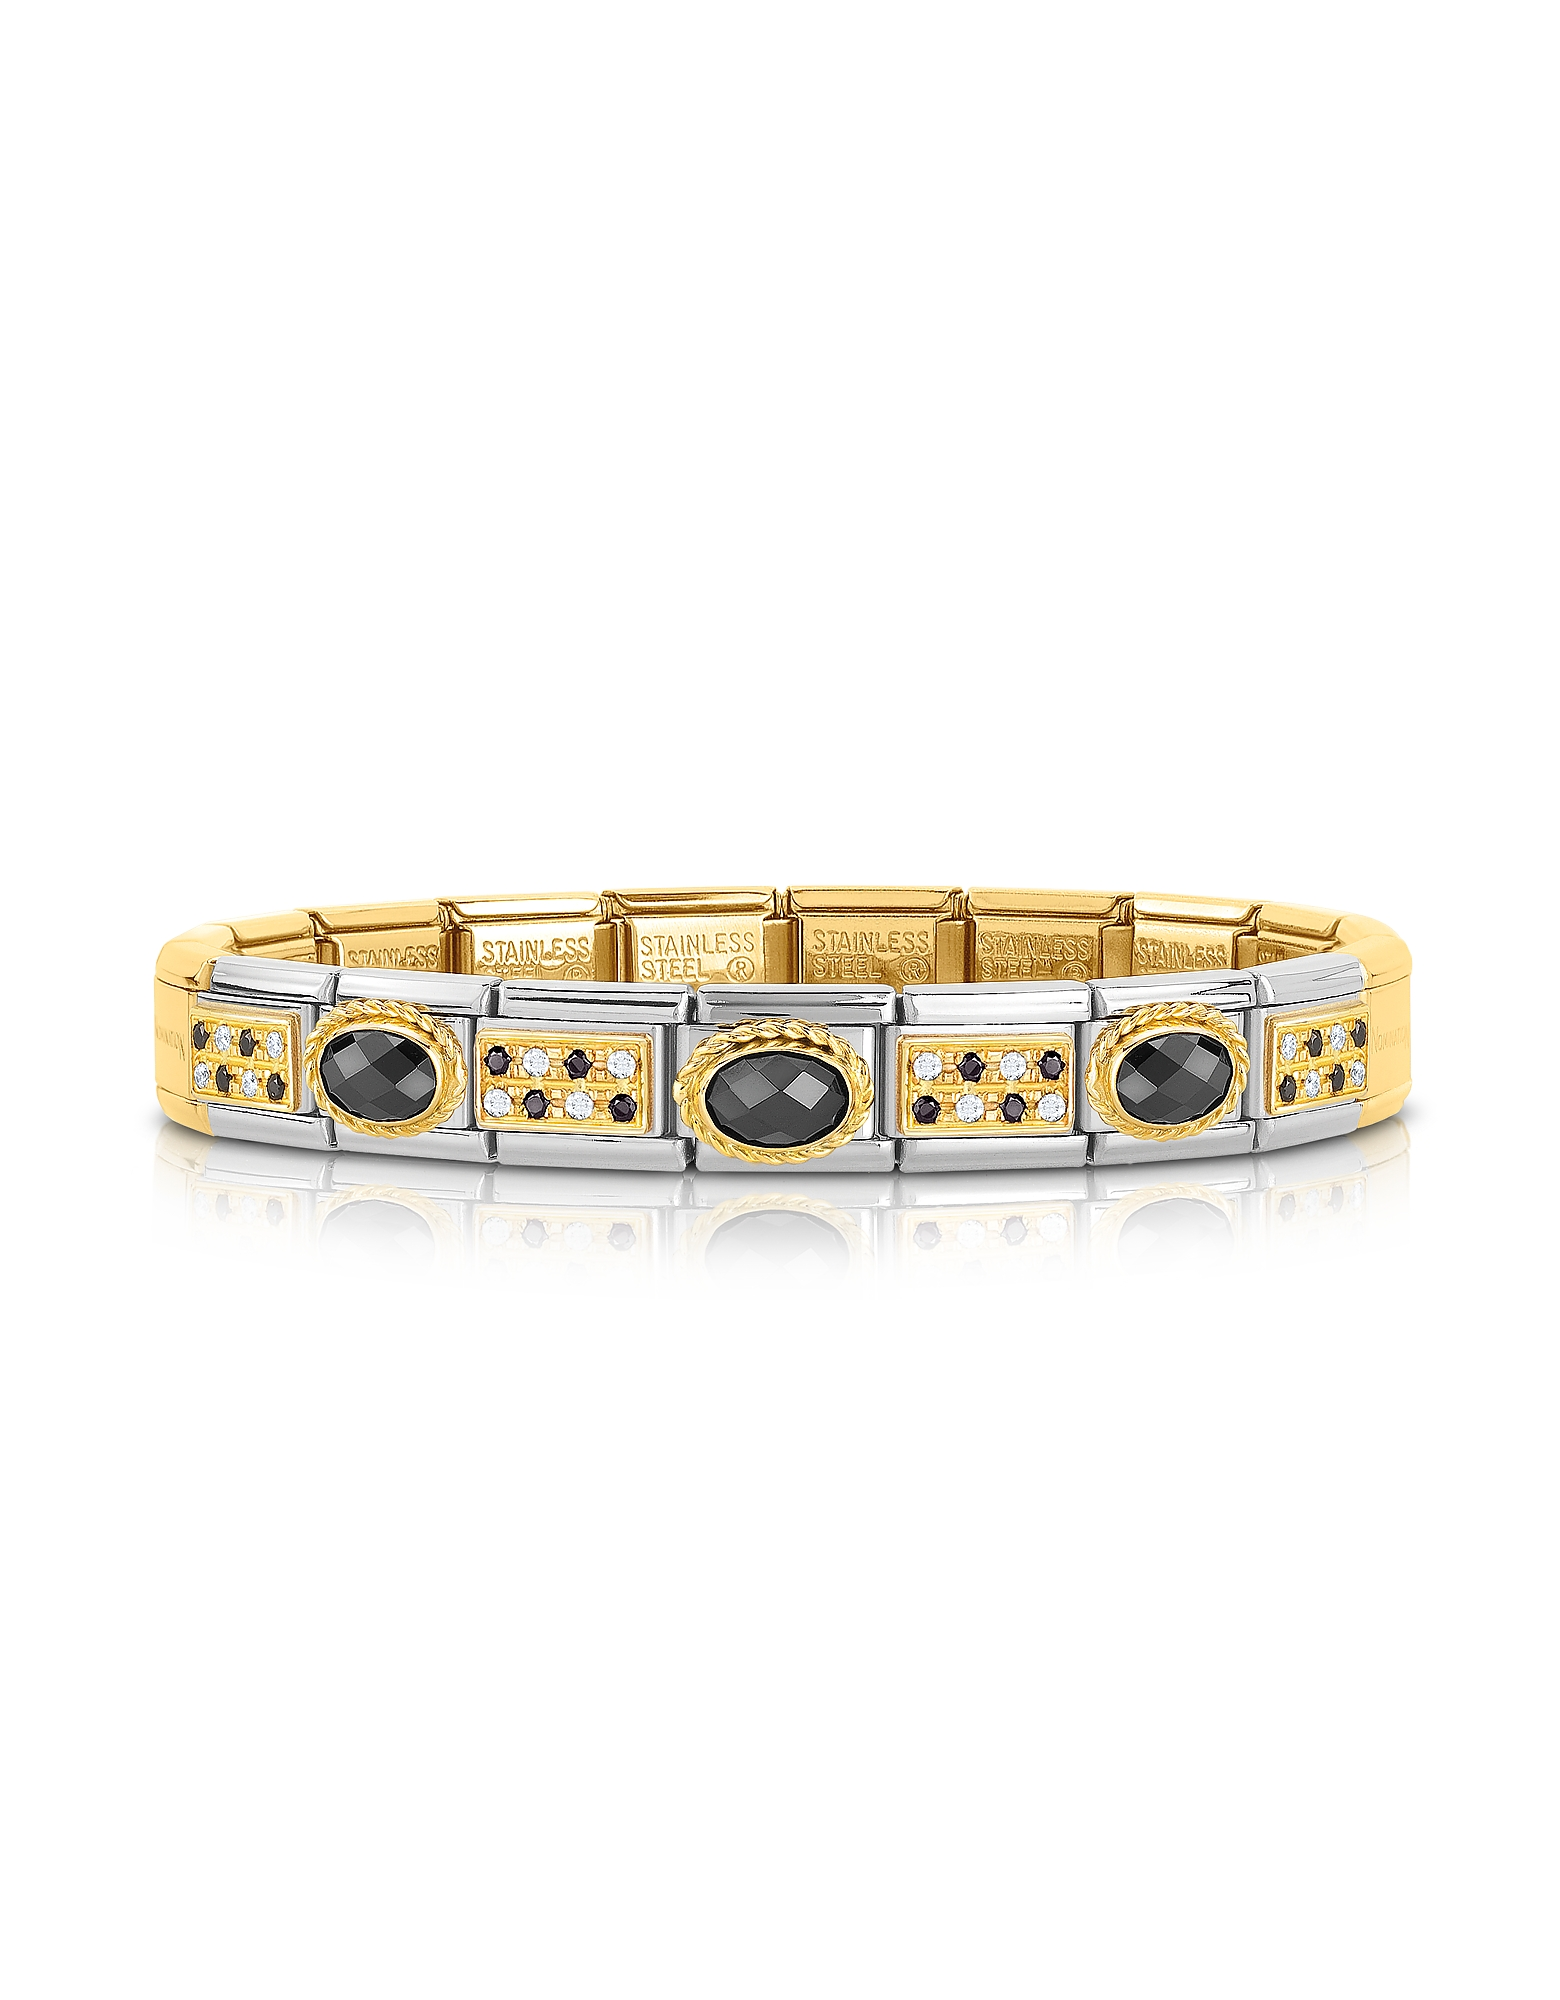 Nomination Bracelets, Classic Pavés Golden Stainless Steel Bracelet w/Black Stone and Cubic Zirconi